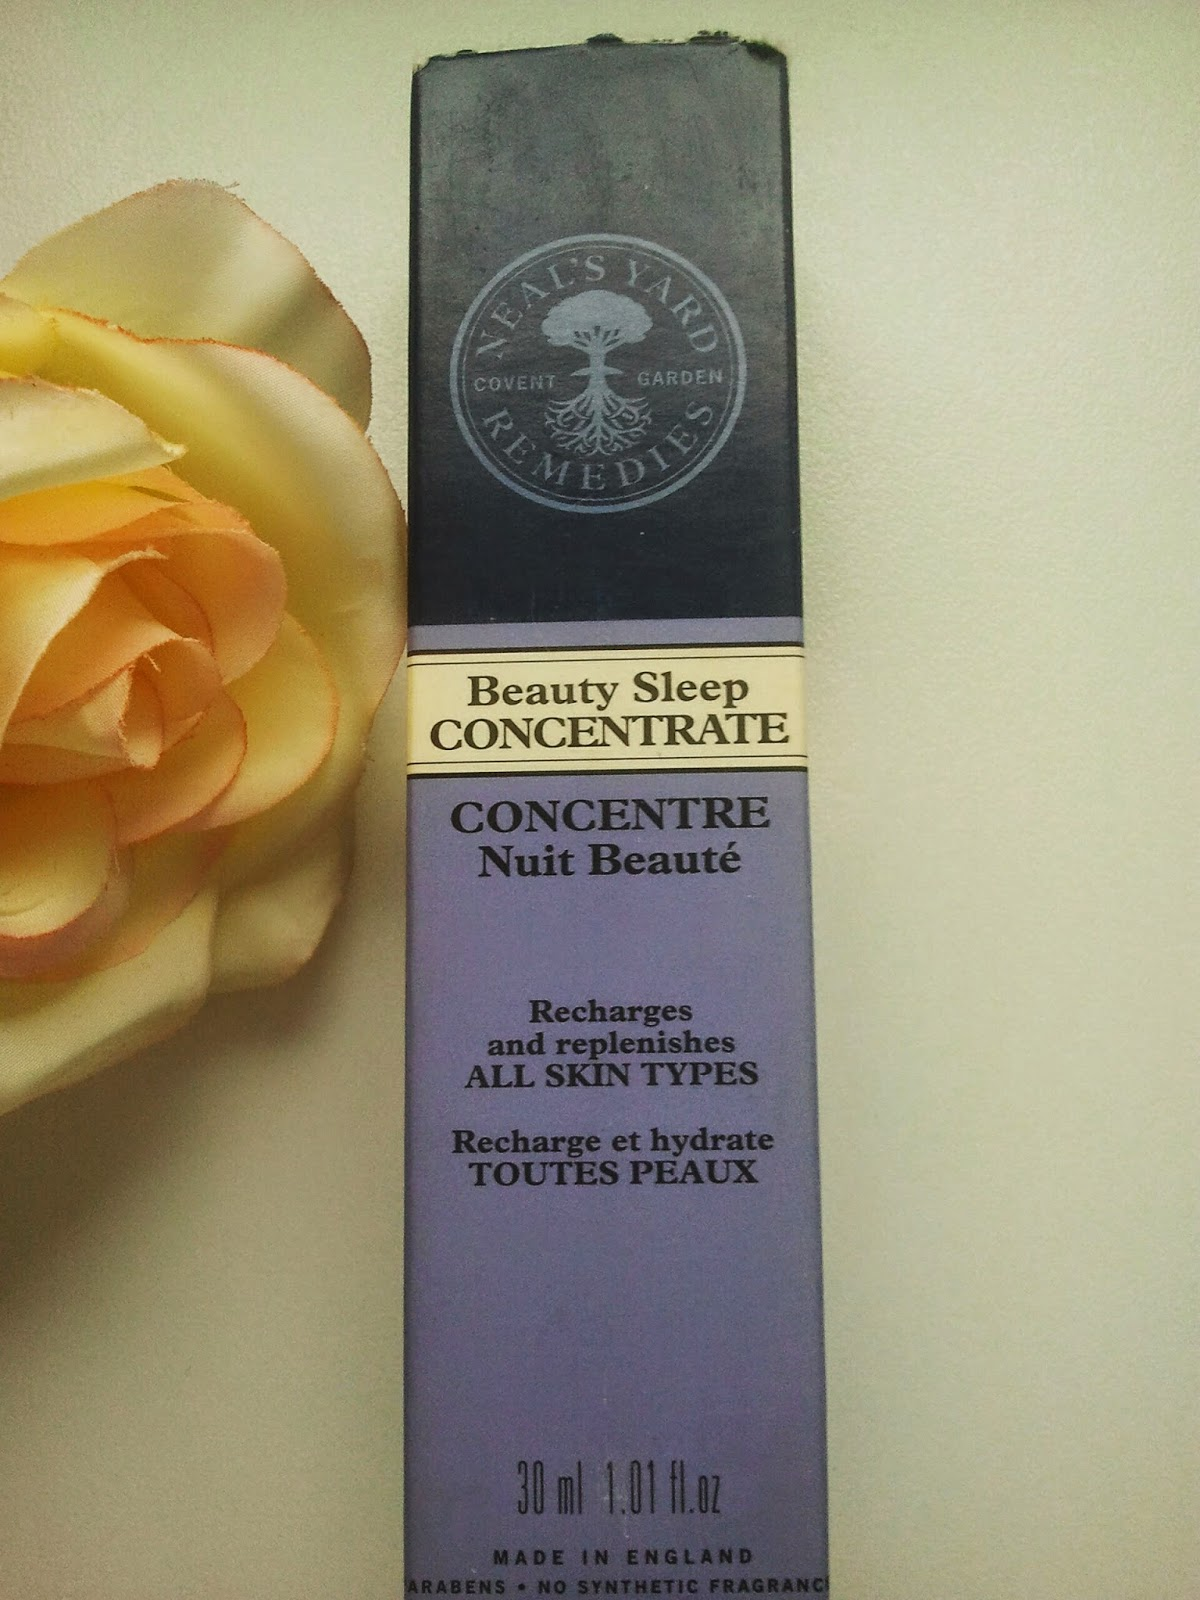 Neal's-Yard-Remedies-Beauty-Sleep-Concentrate-on-my-table-with-a-rose